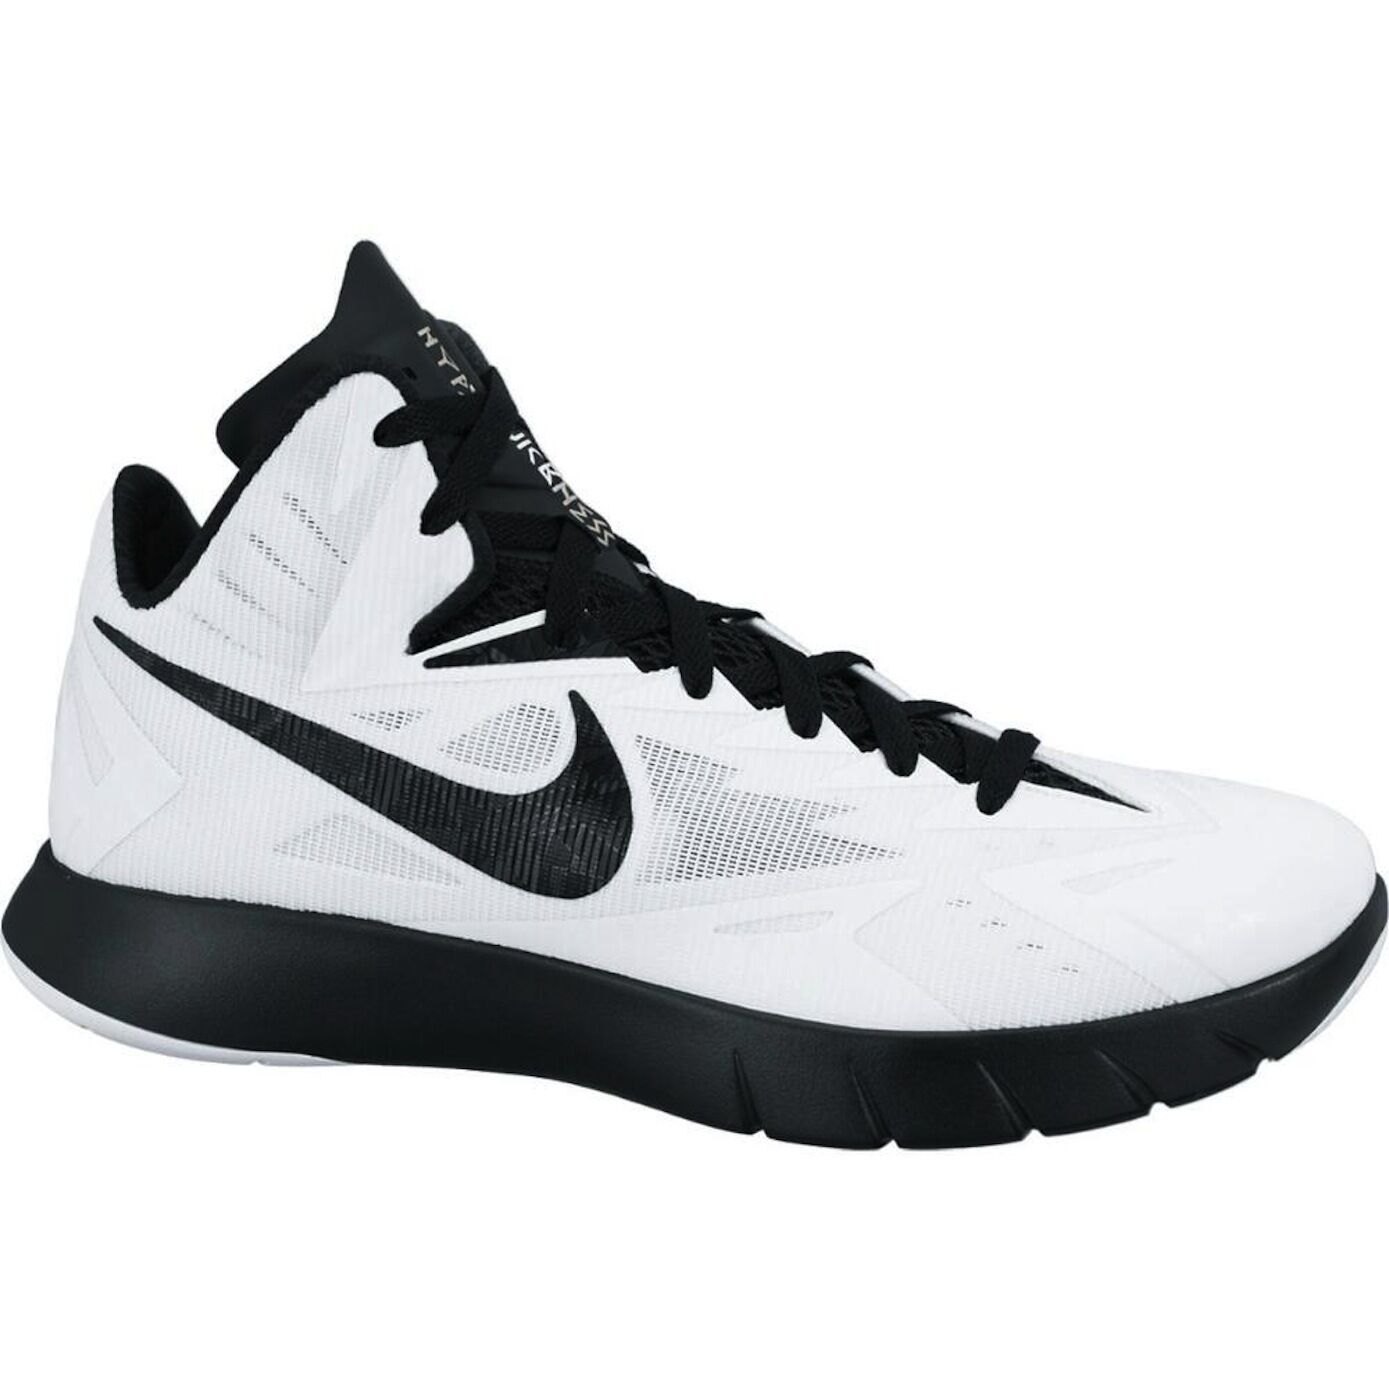 Nike Lunar Hyperquickness TB Uomo White Basketball Shoes 652775-101 Sz 18